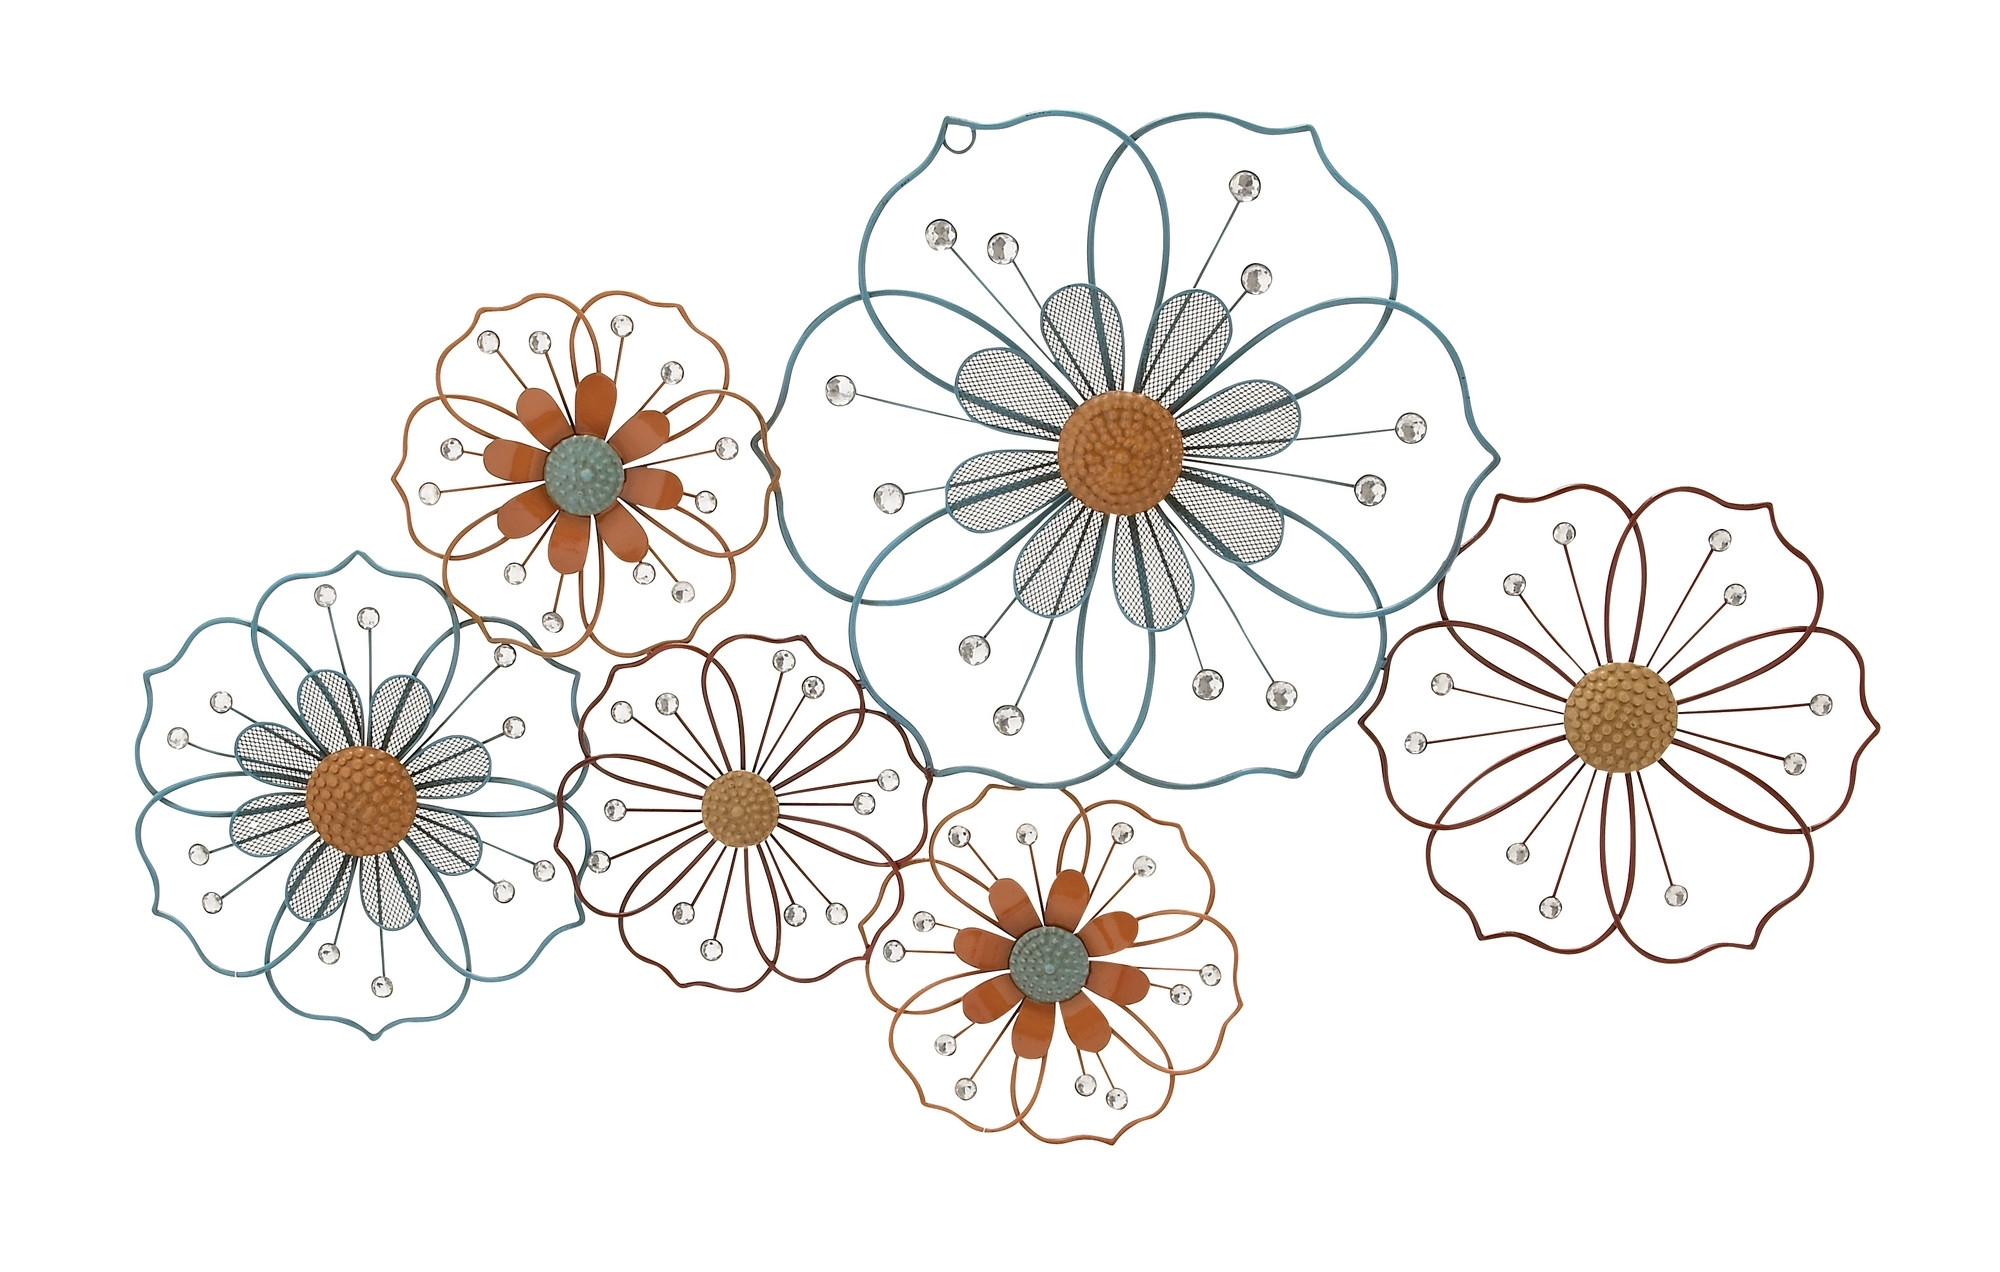 Large Flower Silhouettes – Floral Metal Wall Art With Regard To Trendy Metal Flower Wall Art (Gallery 6 of 15)